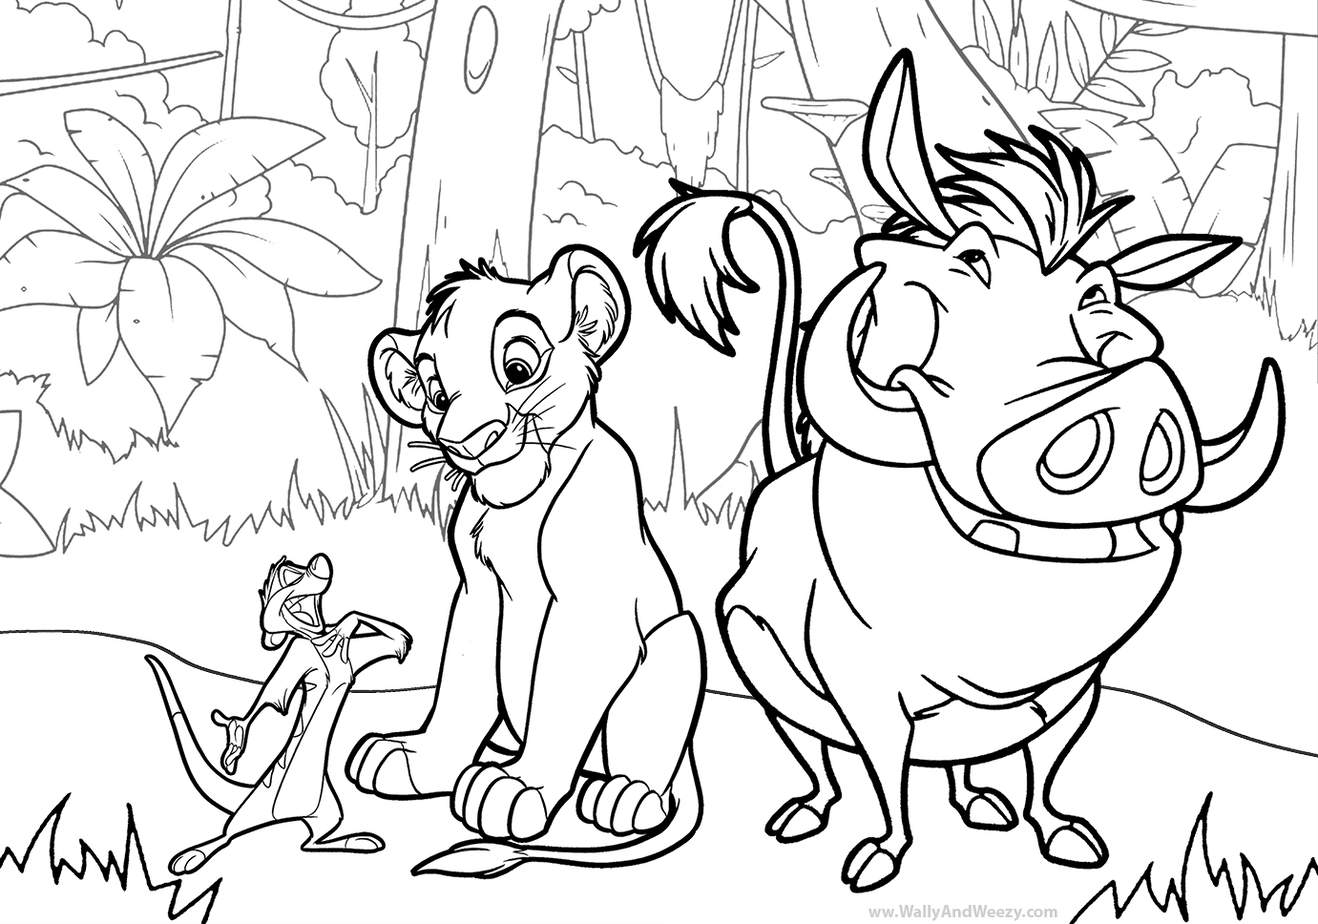 Coloring Pages Archives - Wally and Weezy